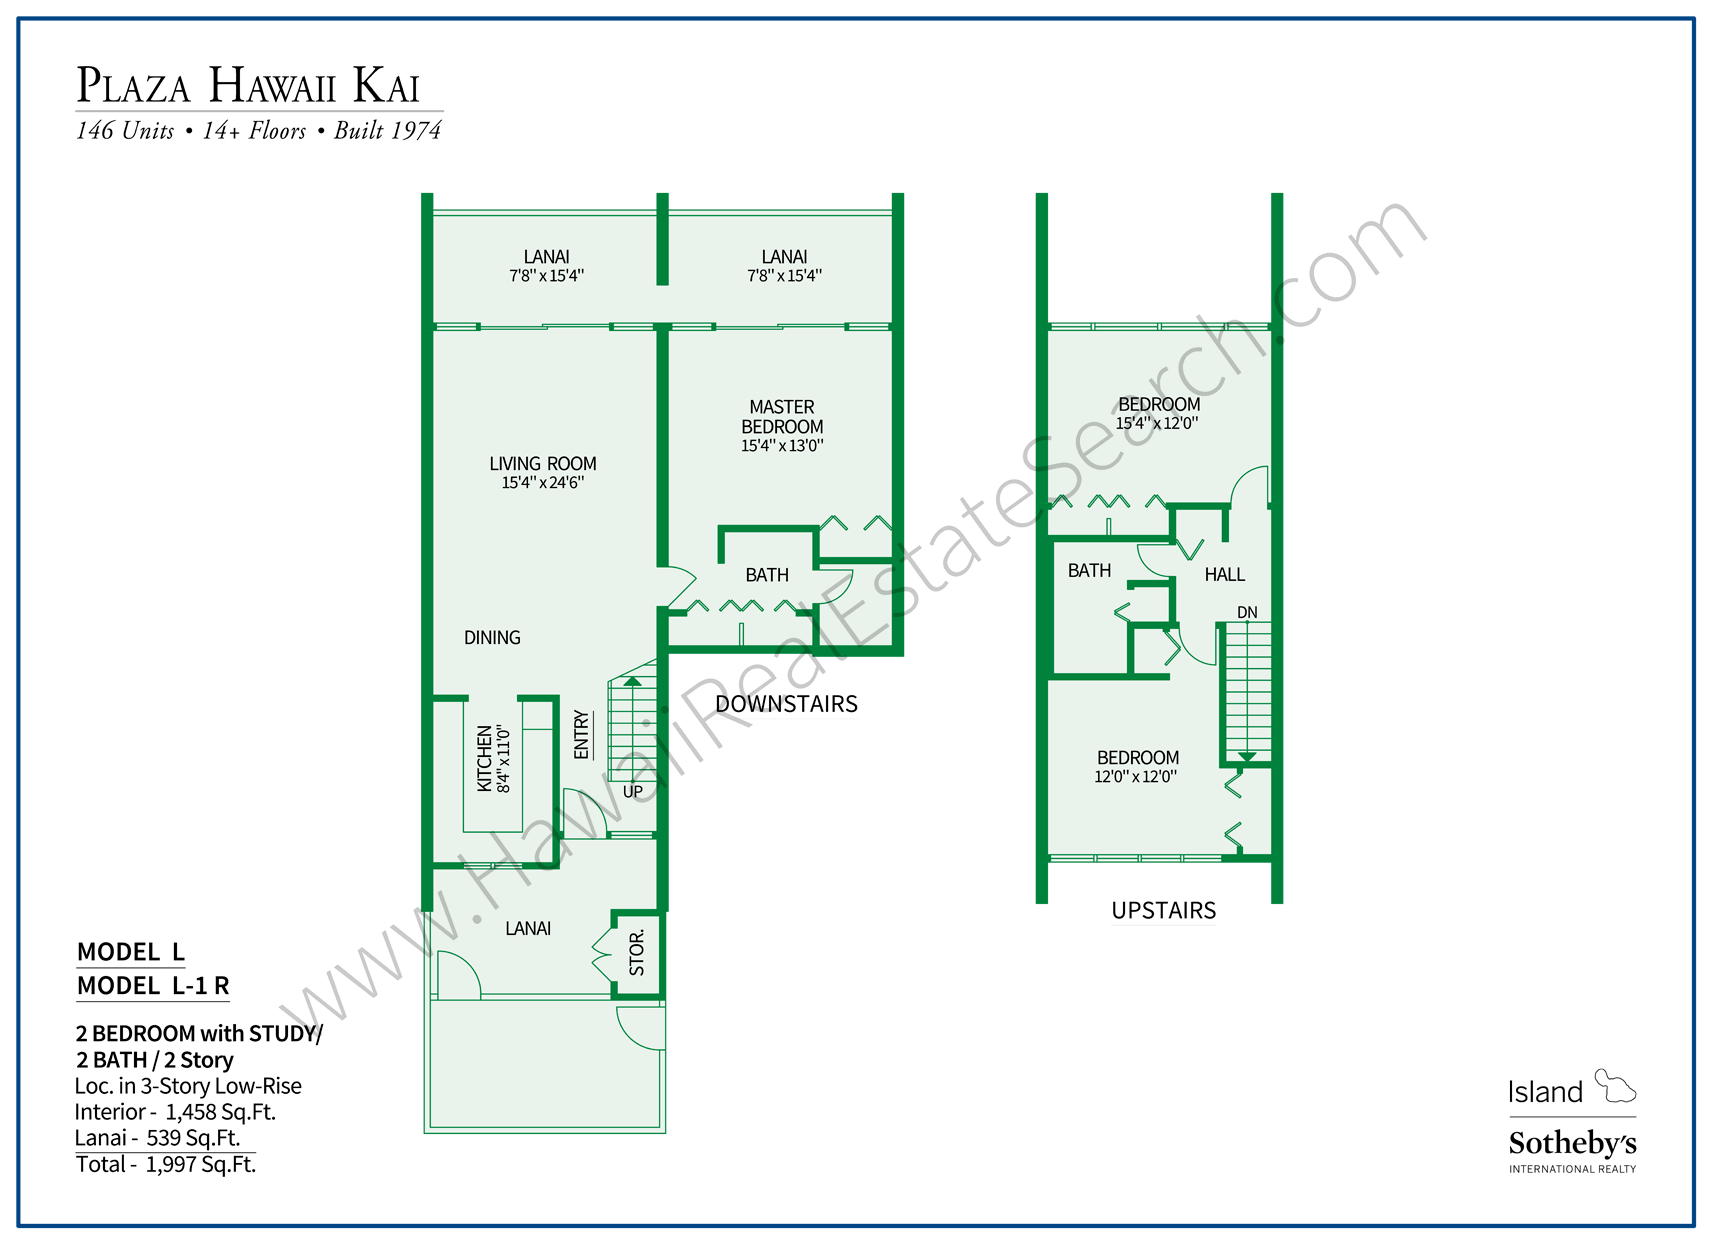 Plaza Hawaii Kai Floor Plan LL